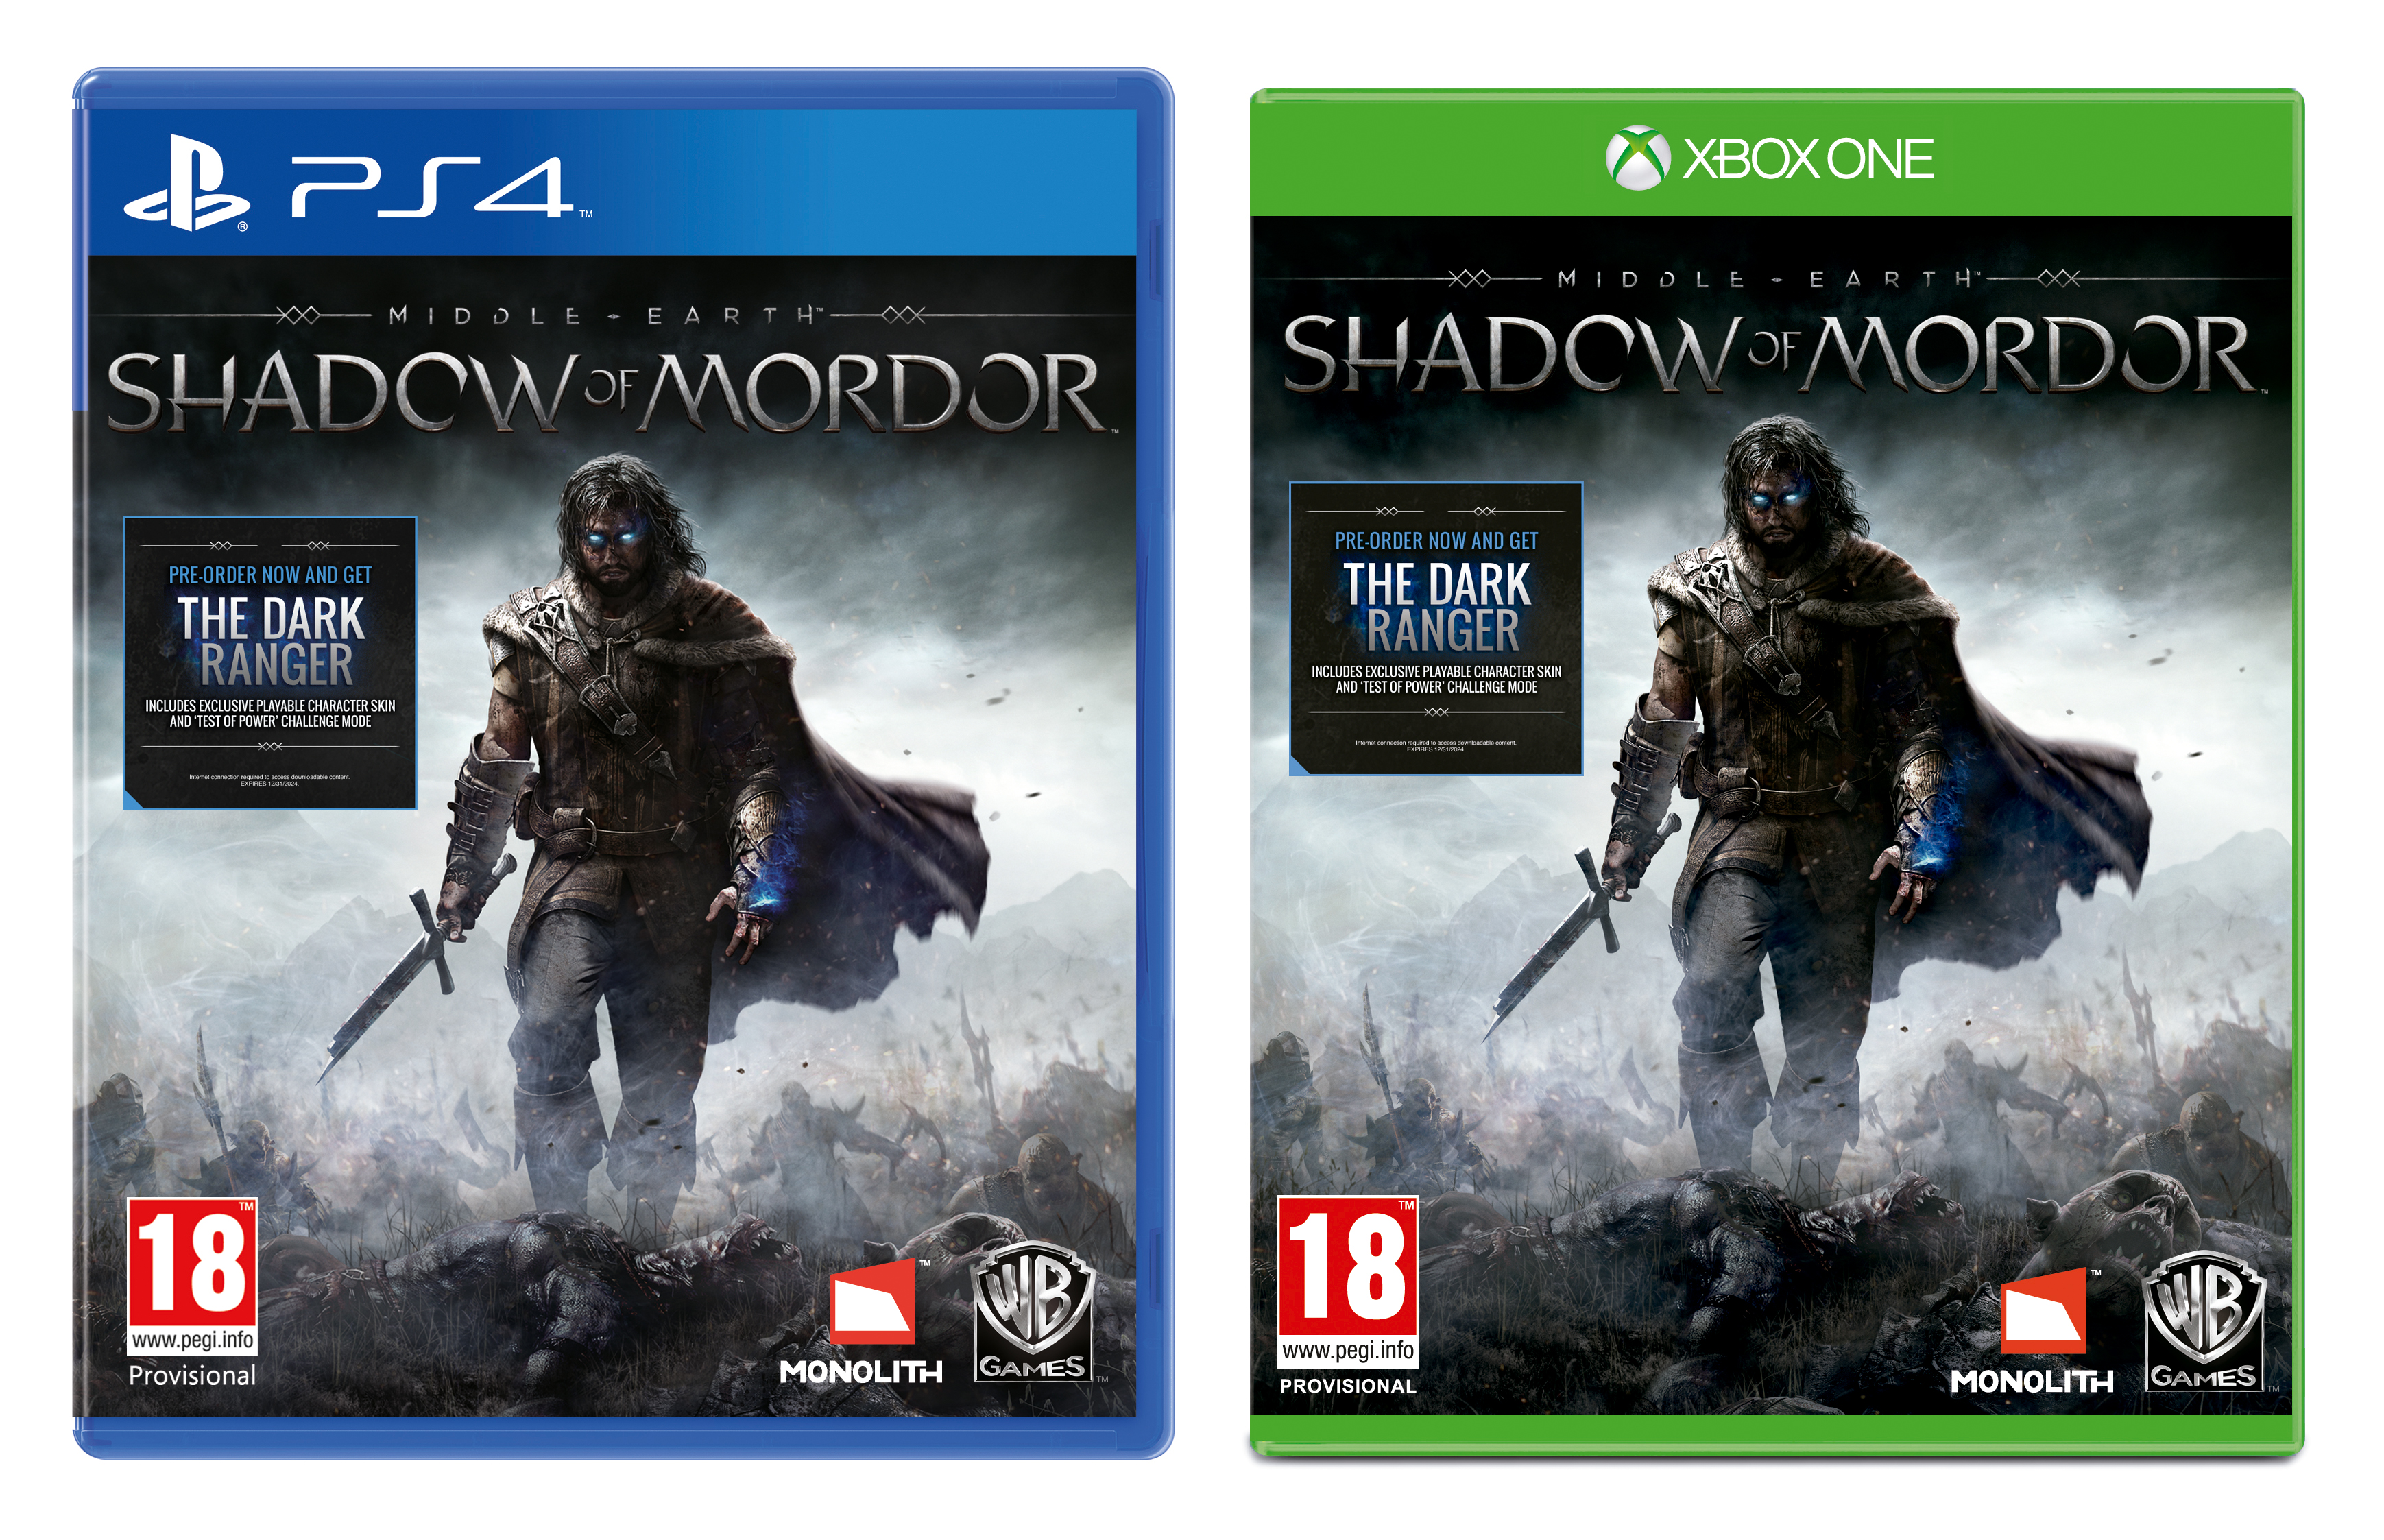 middle-earth-shadow-of-mordor-box-art